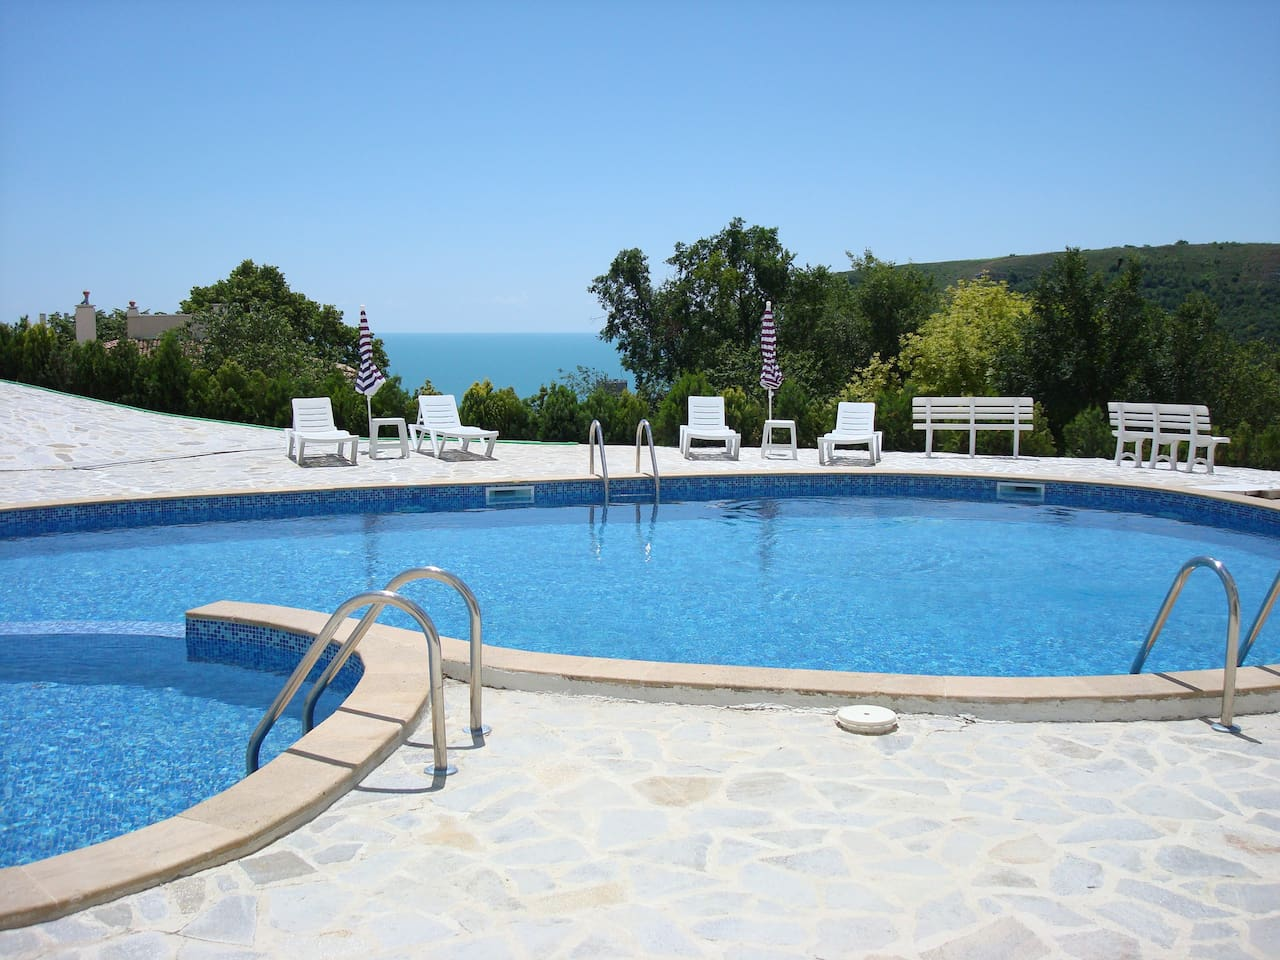 Swimming pool and sun chairs free of charge